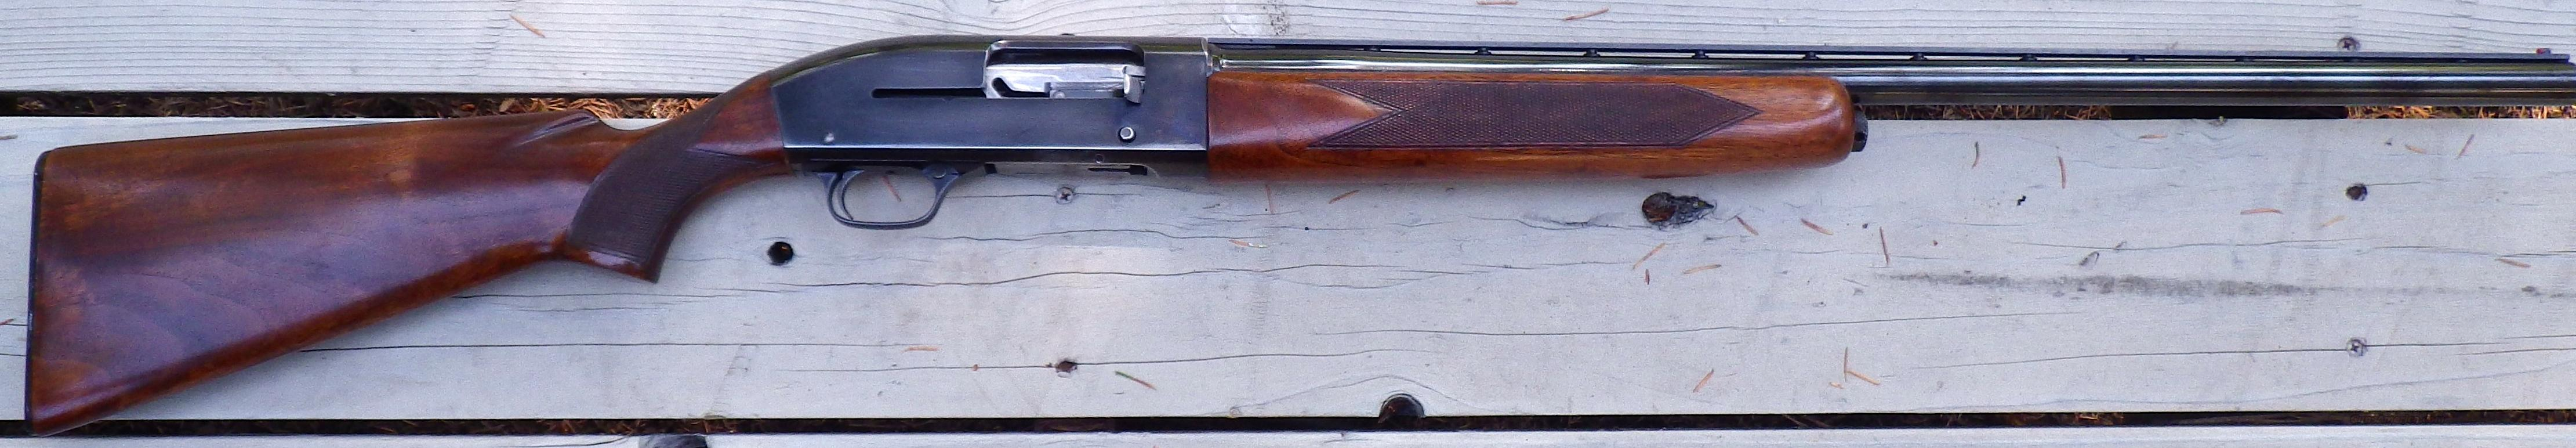 Winchester Model 50 12 gauge, rib added  Guns > Shotguns > Winchester Shotguns - Modern > Autoloaders > Hunting